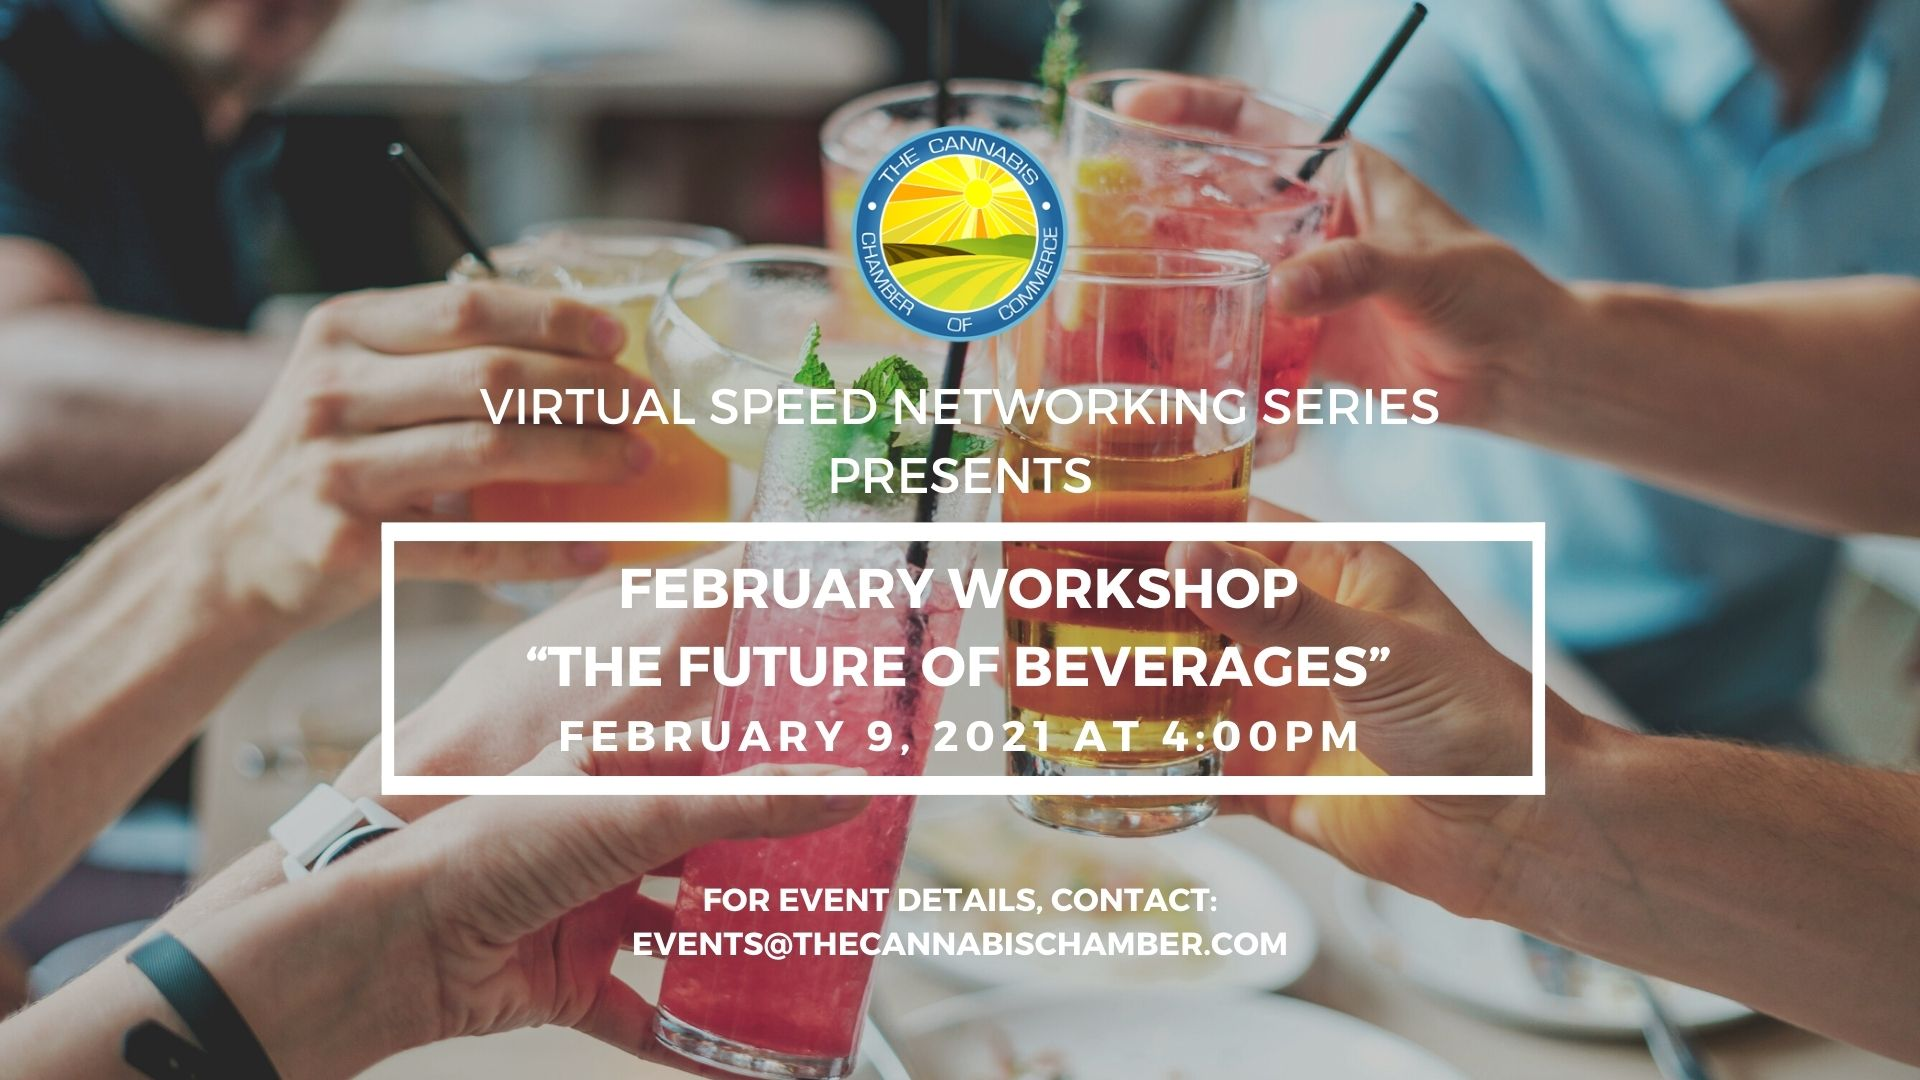 The Future of Beverages: Virtual Speed Networking Event